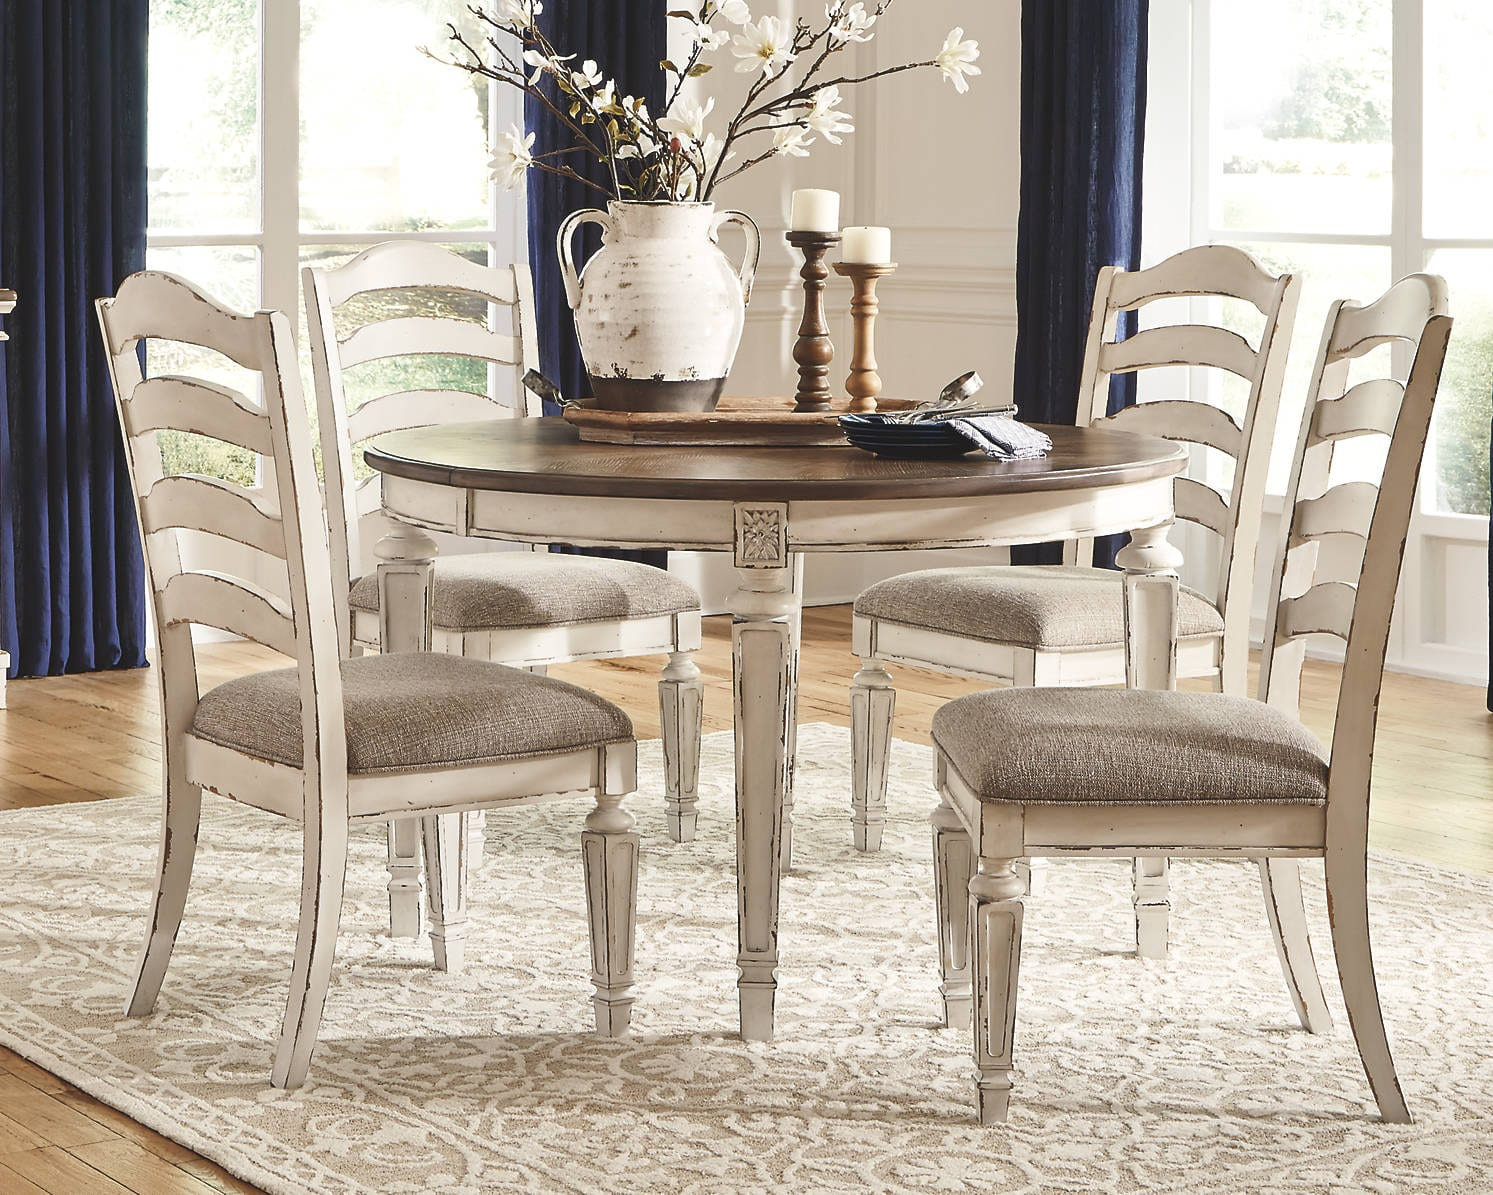 oval shaped dining table designs